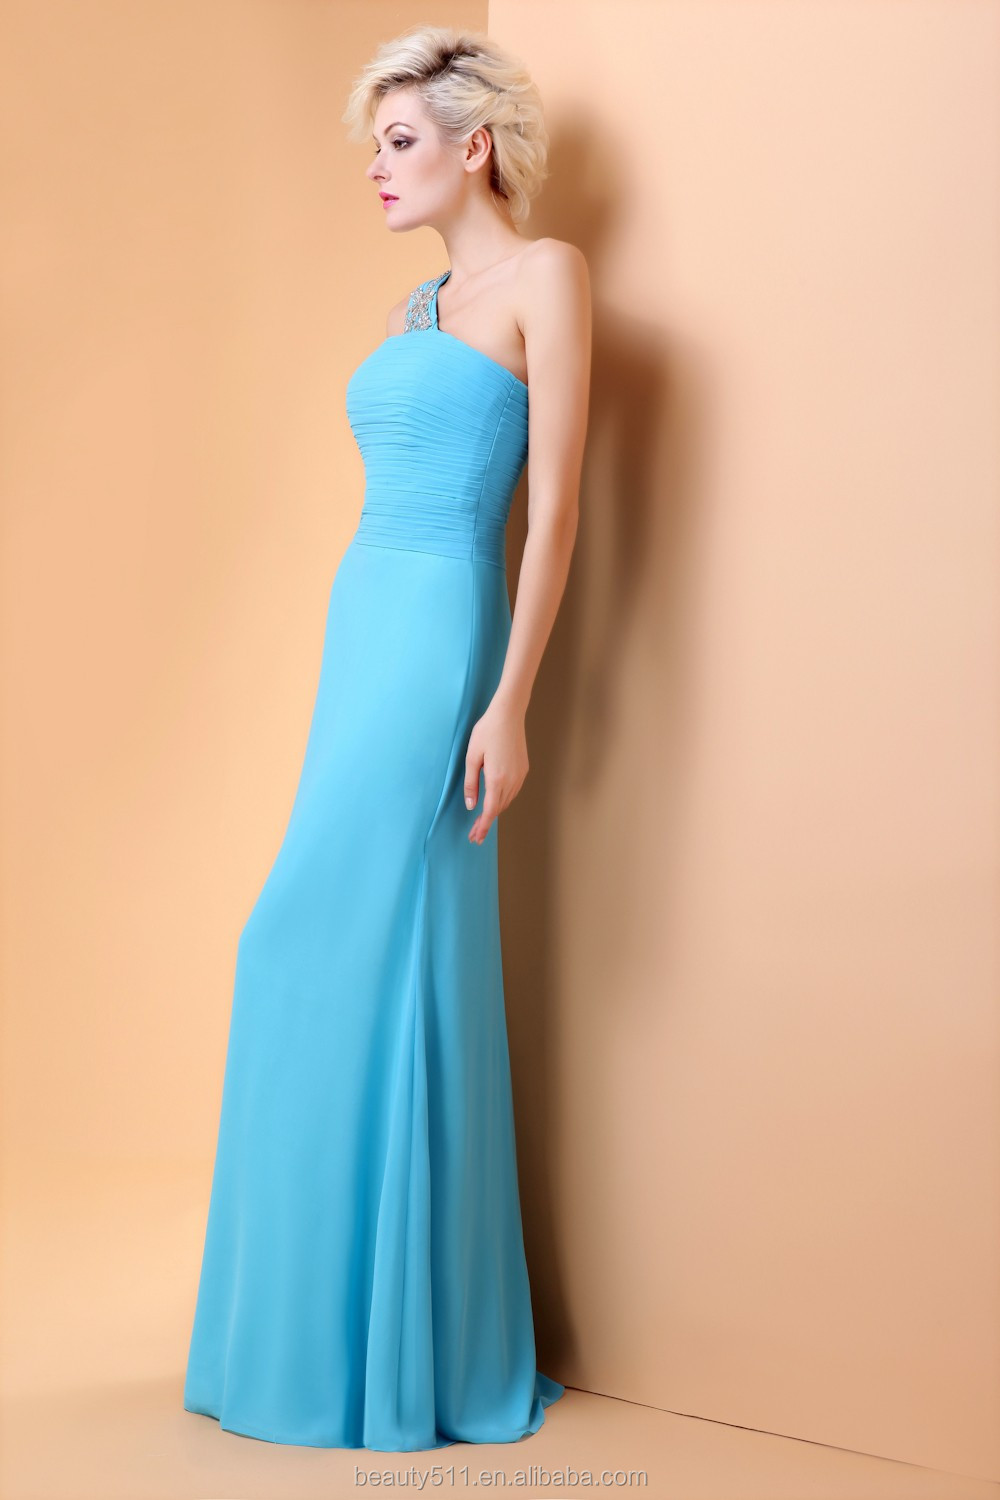 sexy strapless cocktail party dress One-shoulder designer evening dress patterns prom dress evening gown DE28